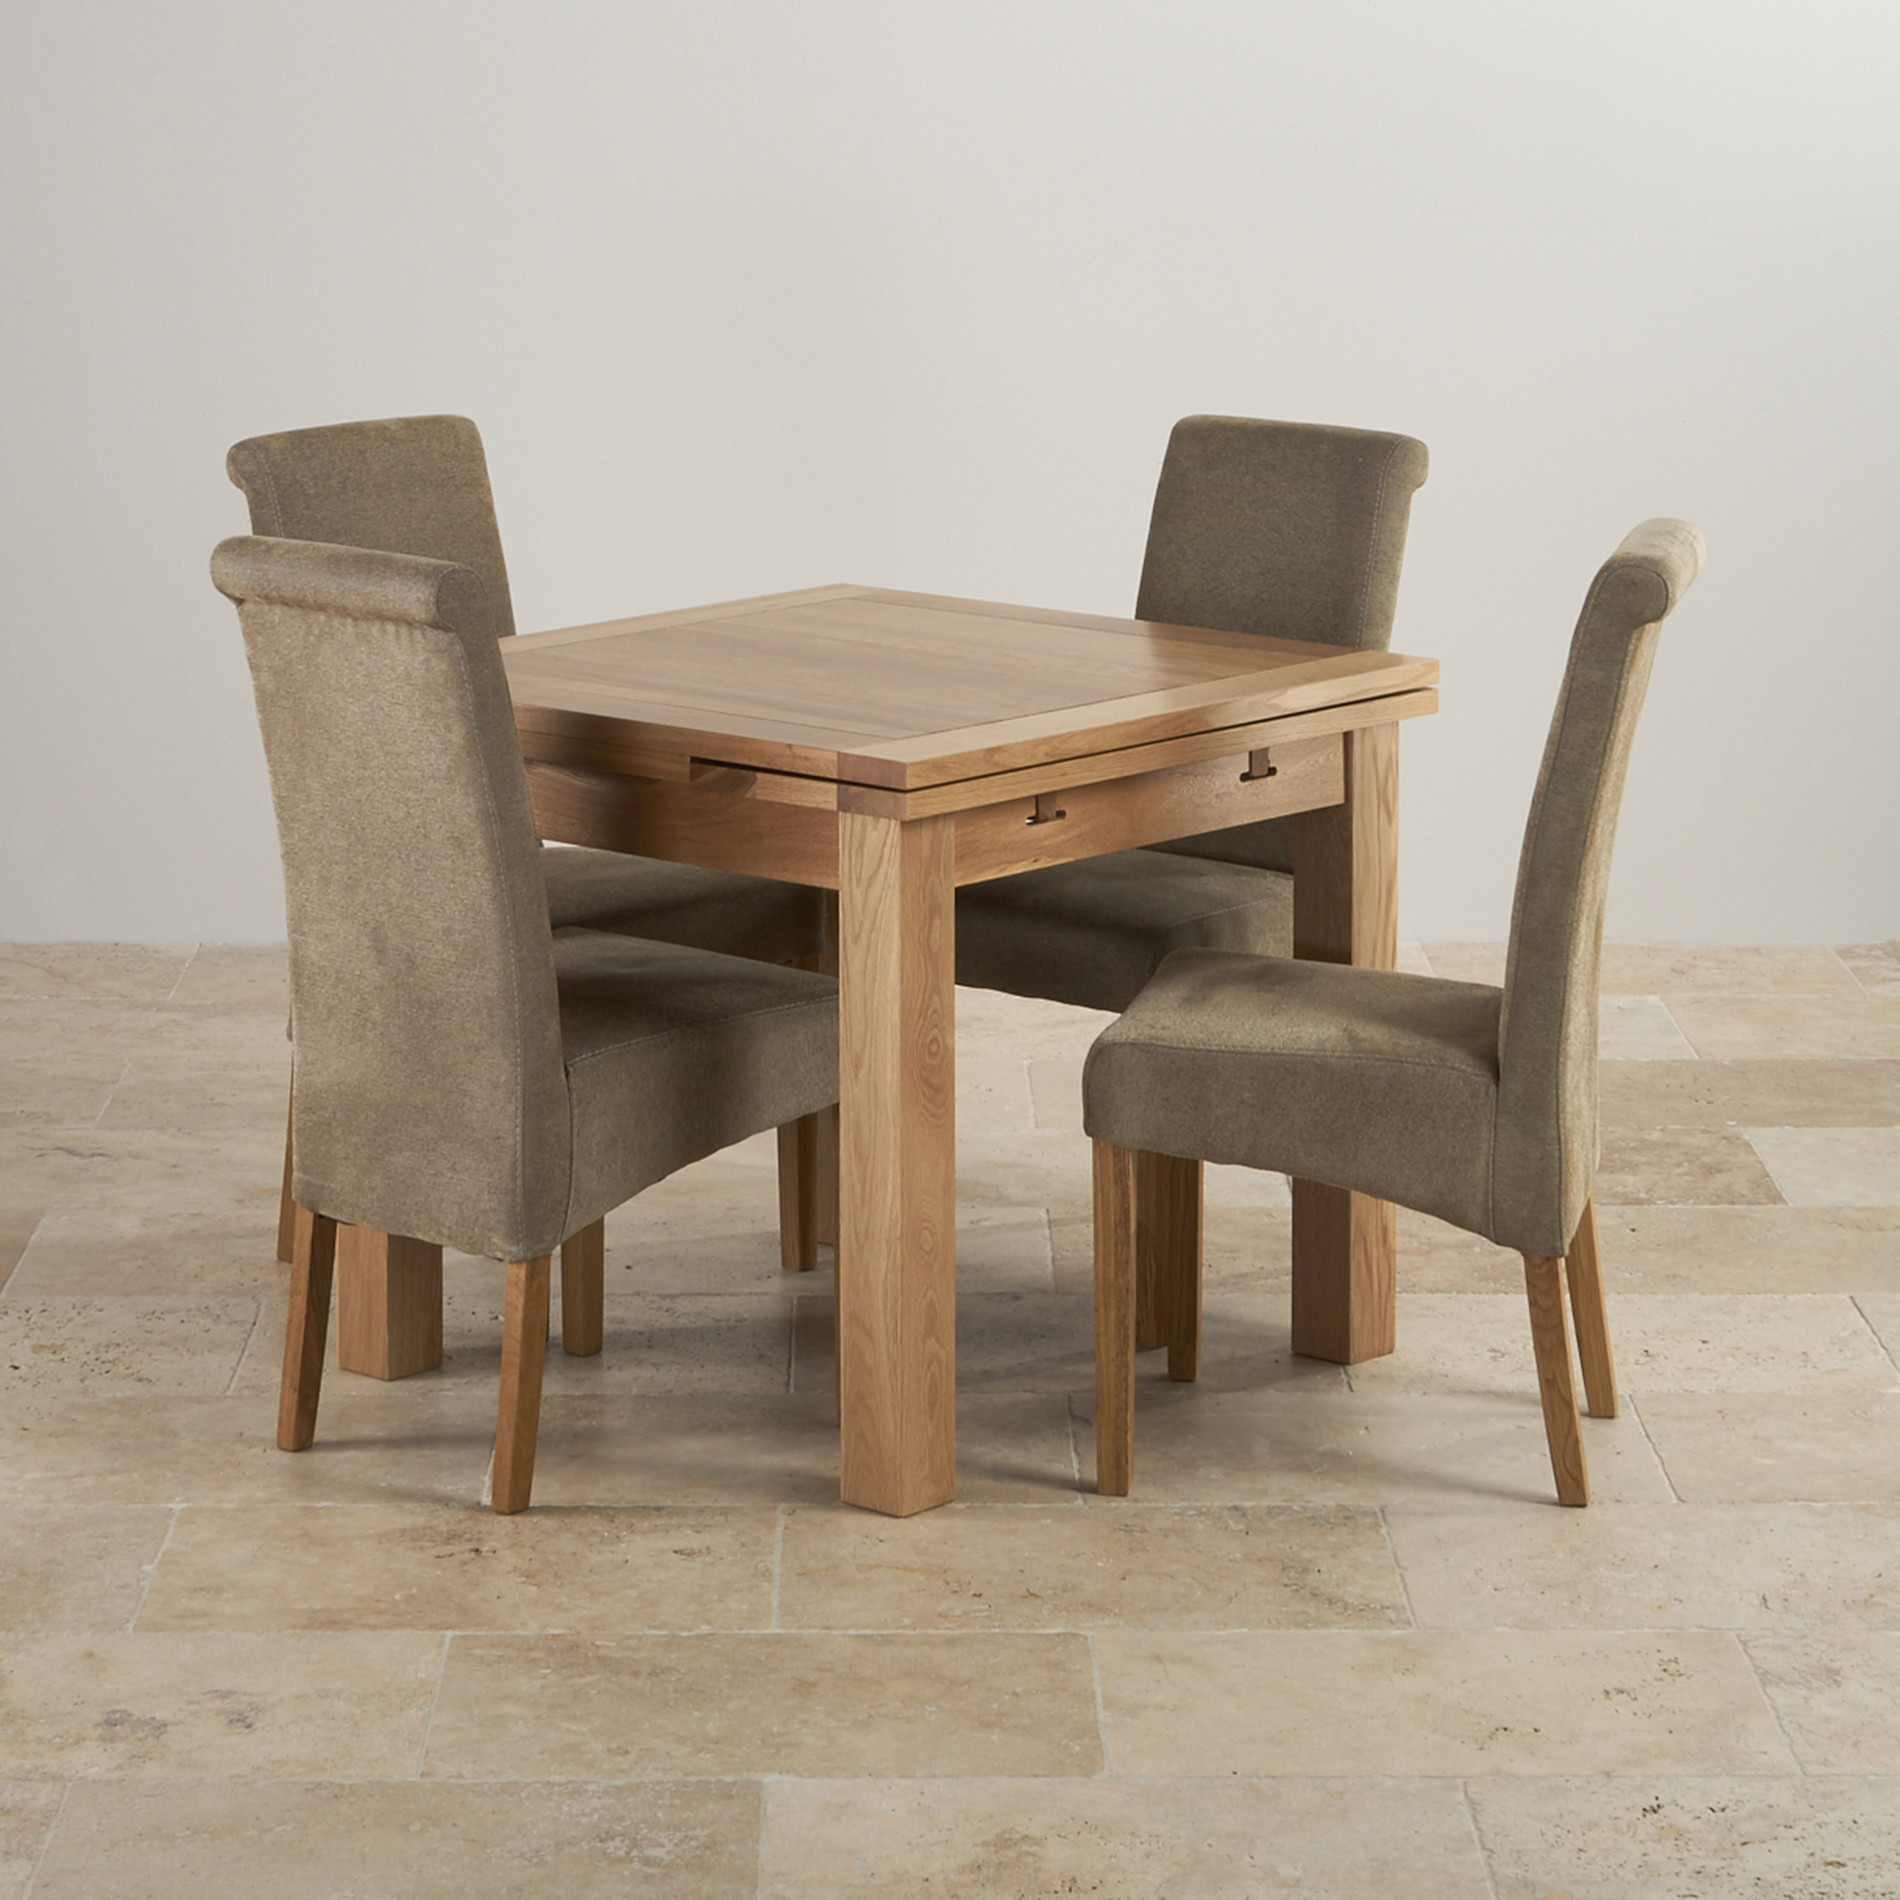 2 Chair Dining Table Dorset Oak 3ft Dining Table With 4 Sage Fabric Chairs